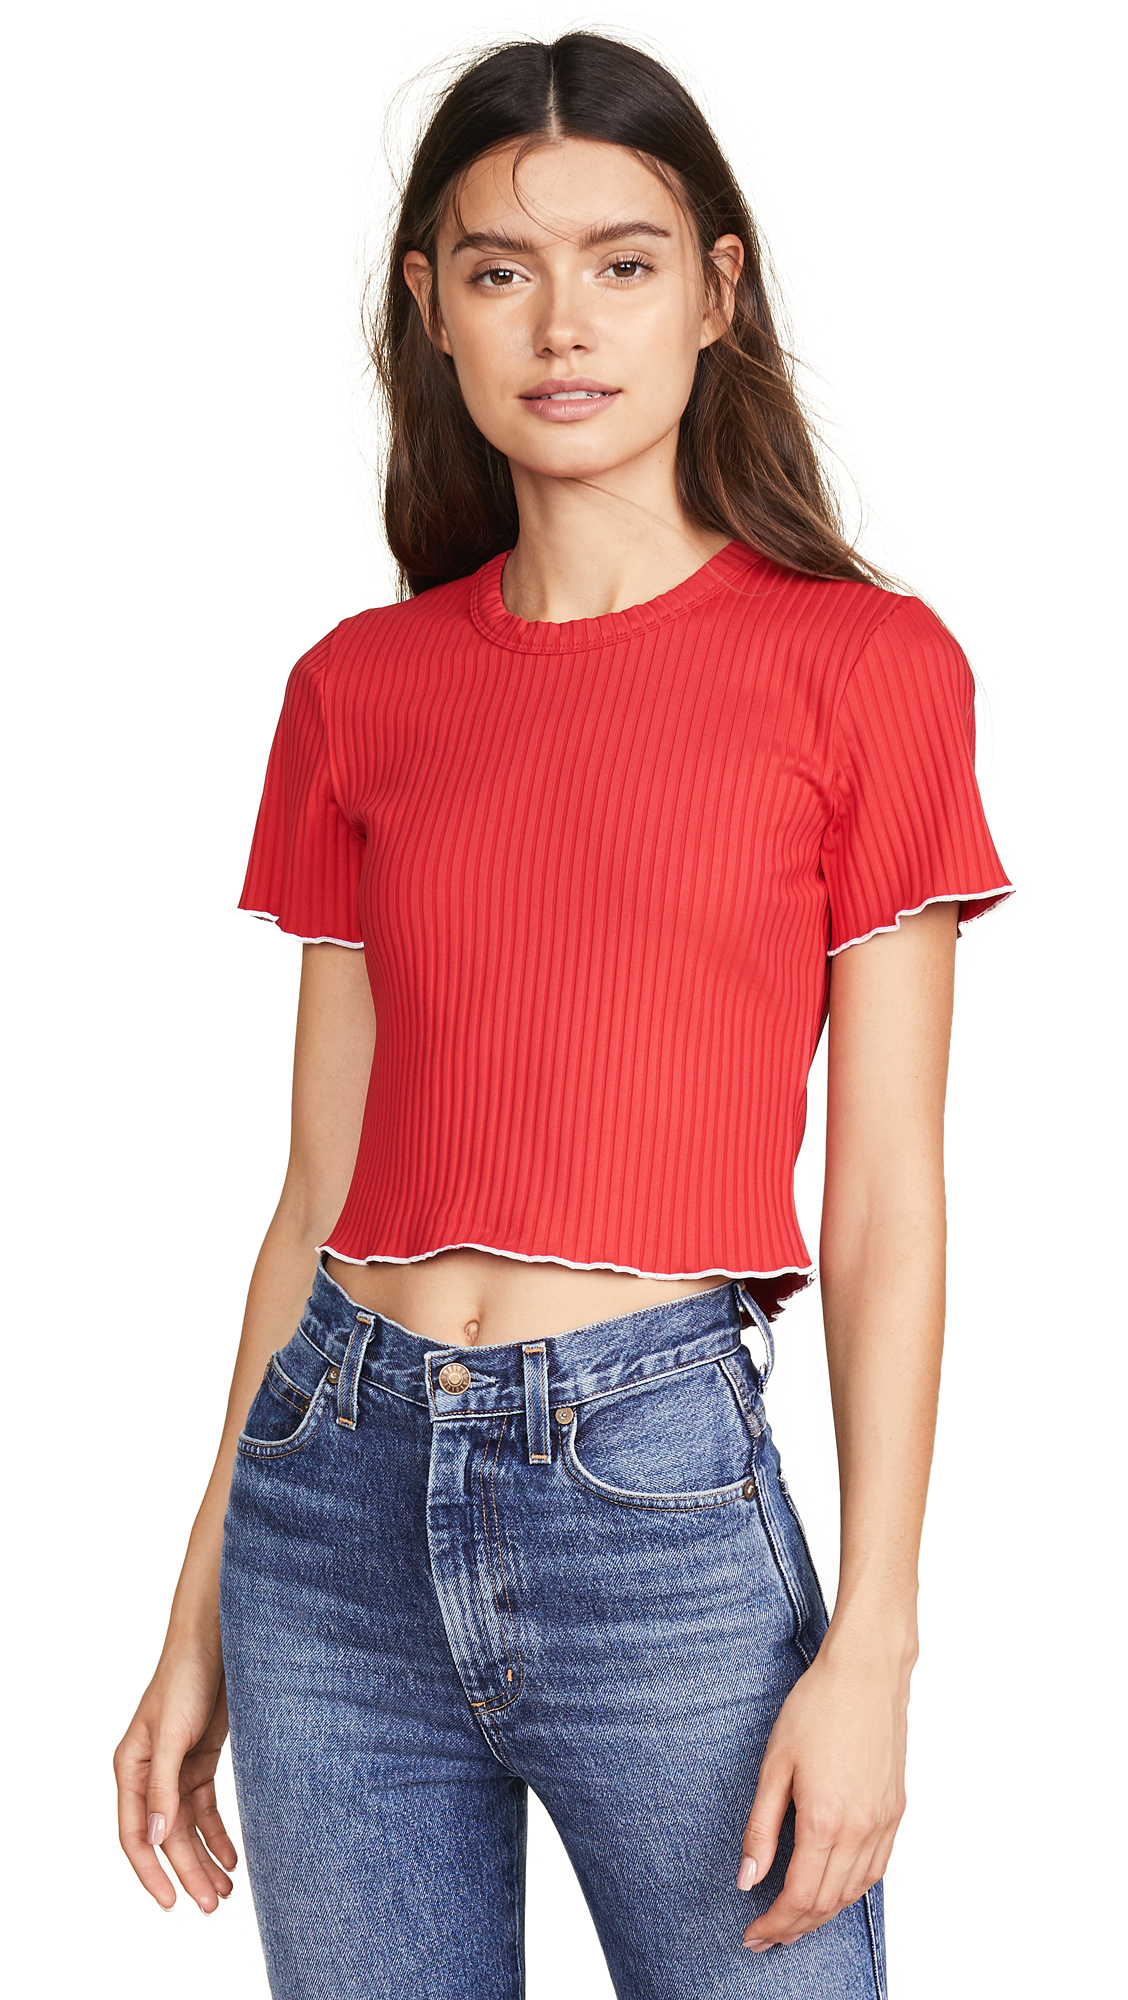 LIANA CLOTHING The Ruby Tee in Red/White